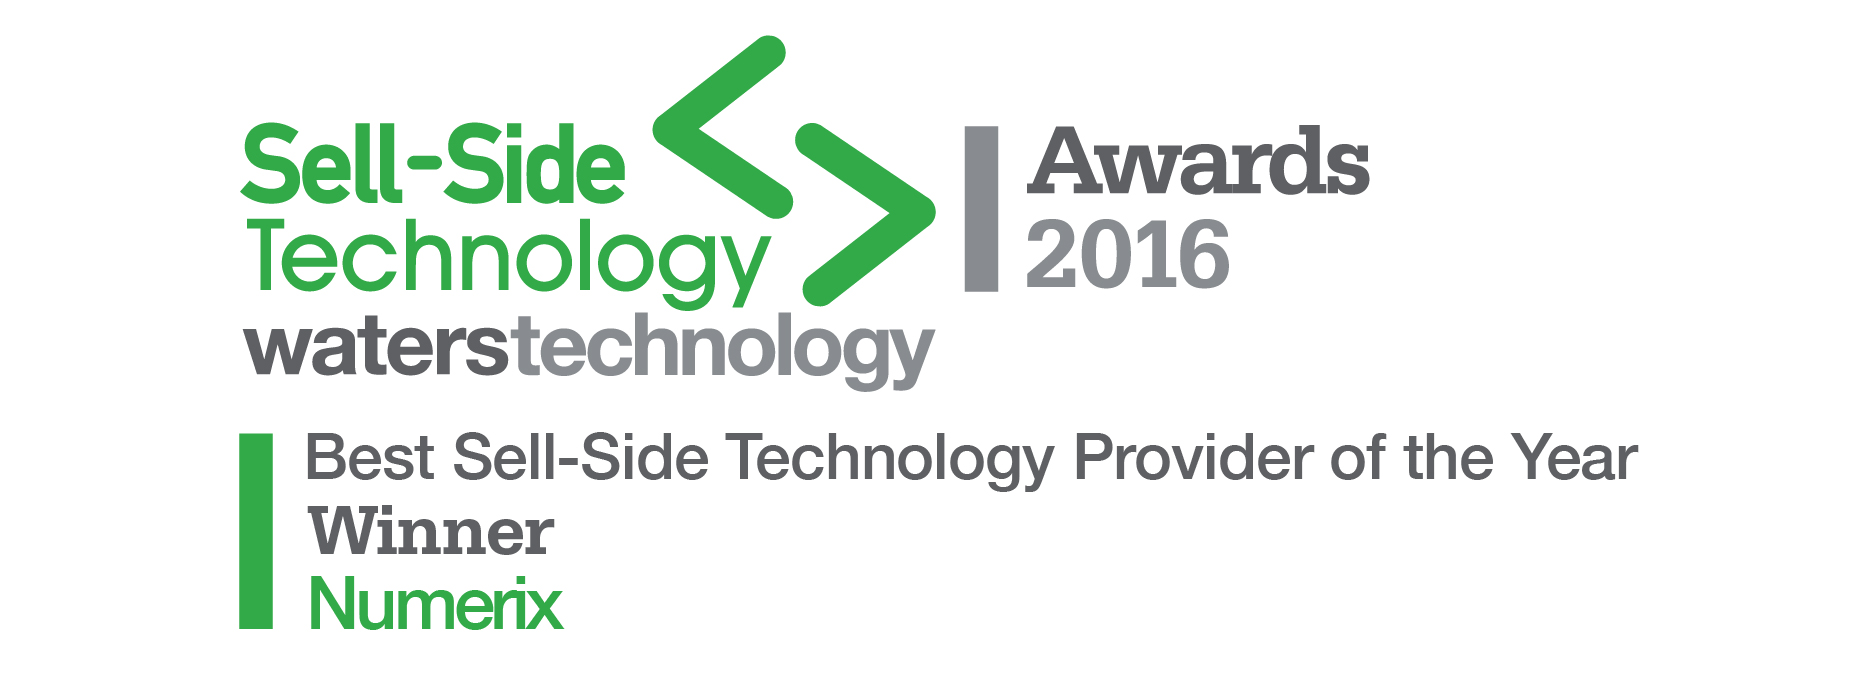 Numerix Named Best Sell Side Technology Provider of the Year in 2016 Waters Sell-Side Technology Awards